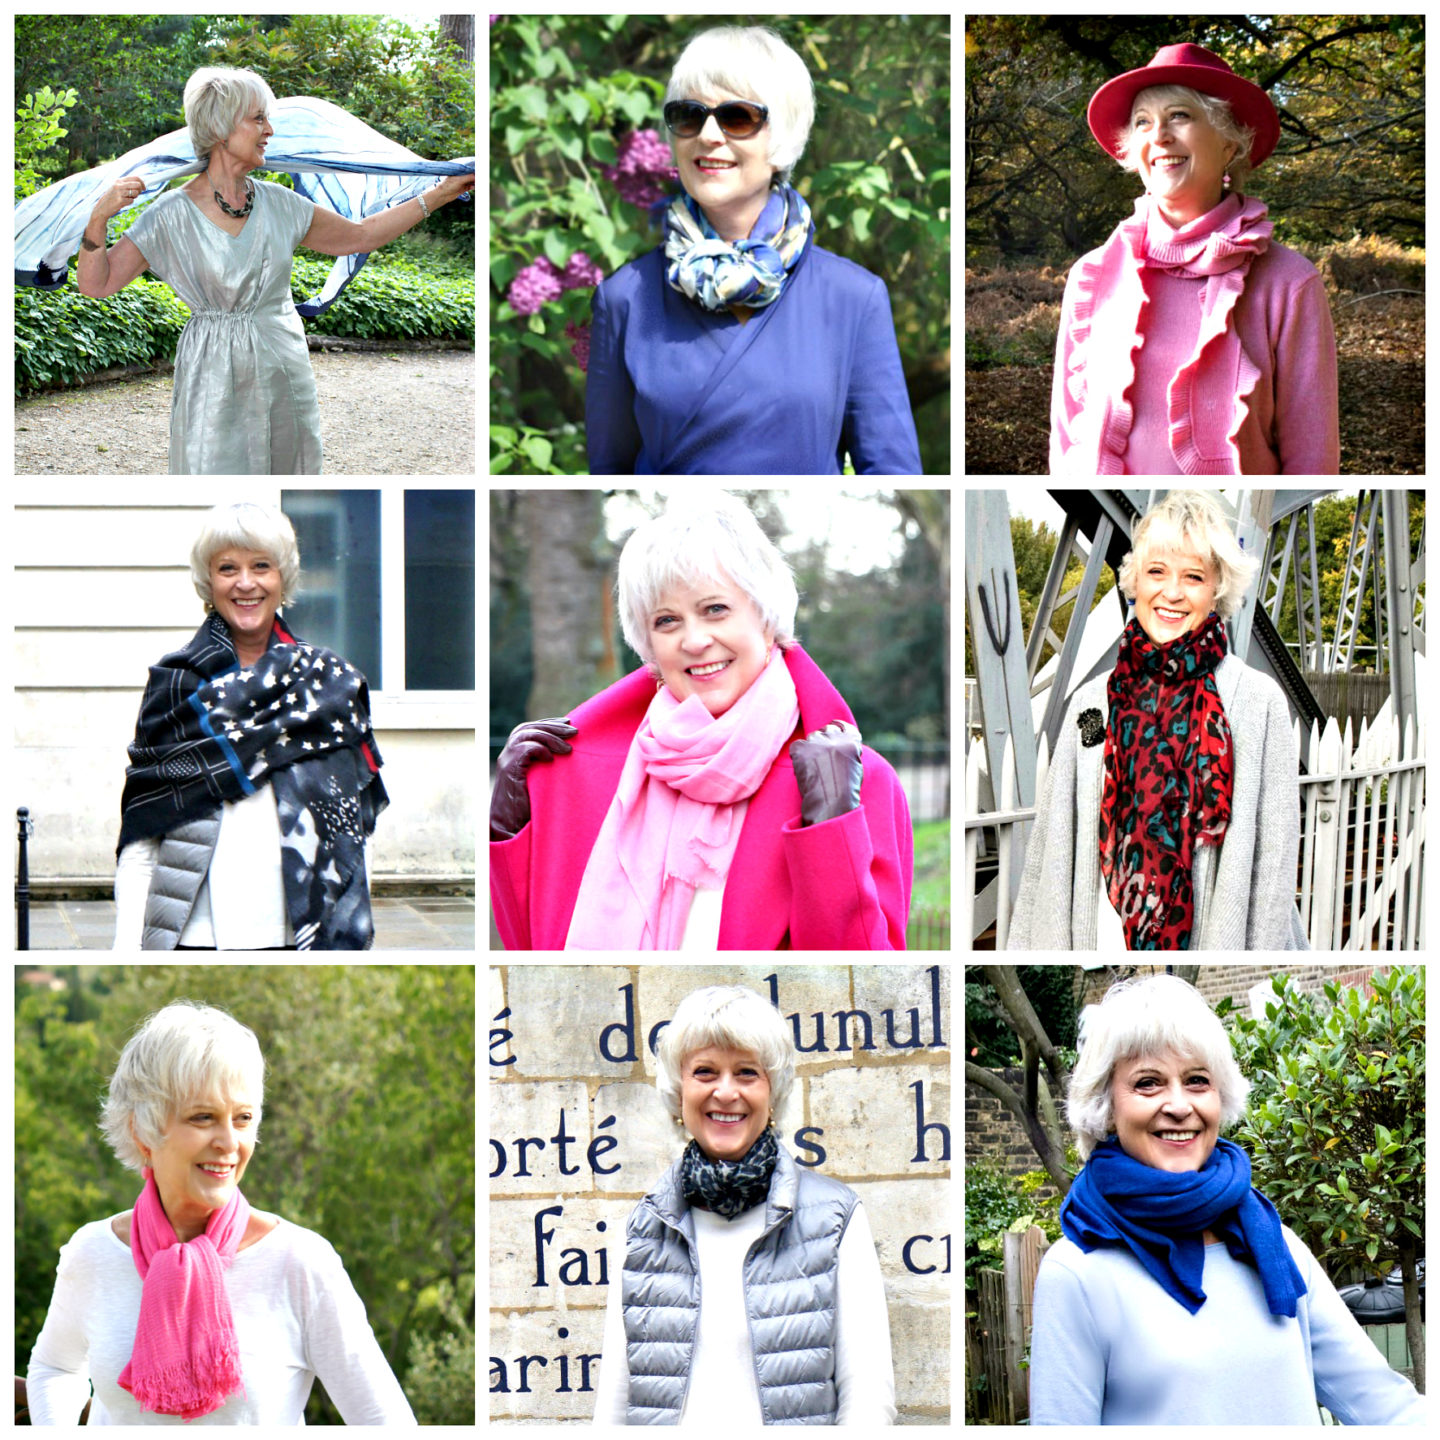 Scarves add colour and update your look